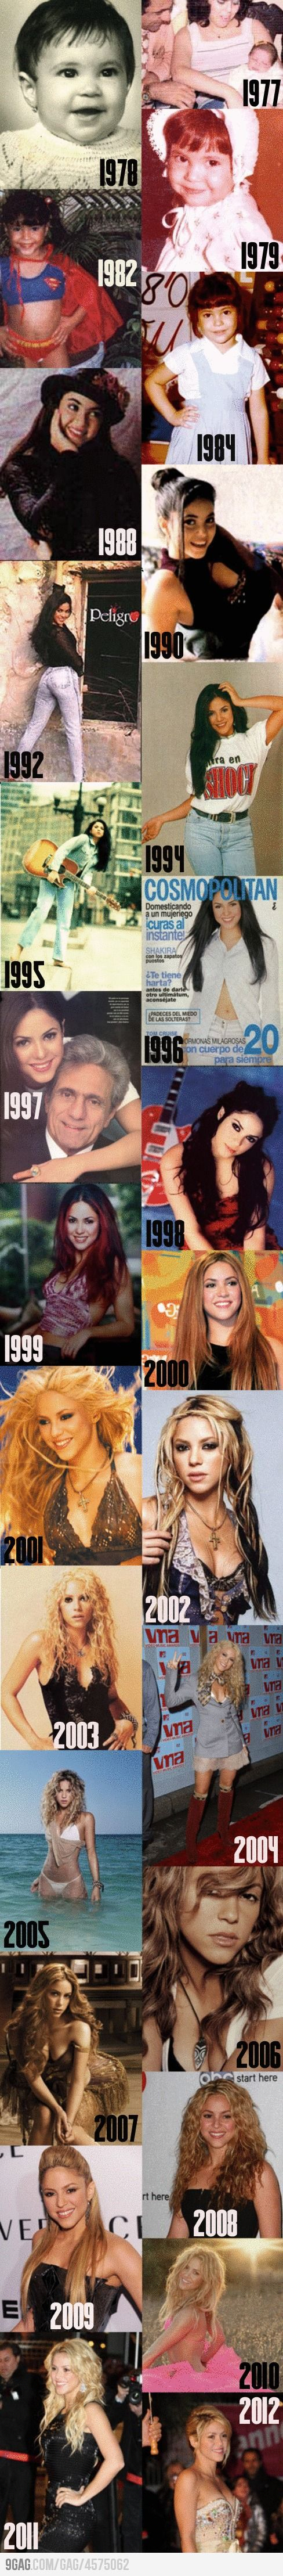 The timeless fabulousity of Shakira